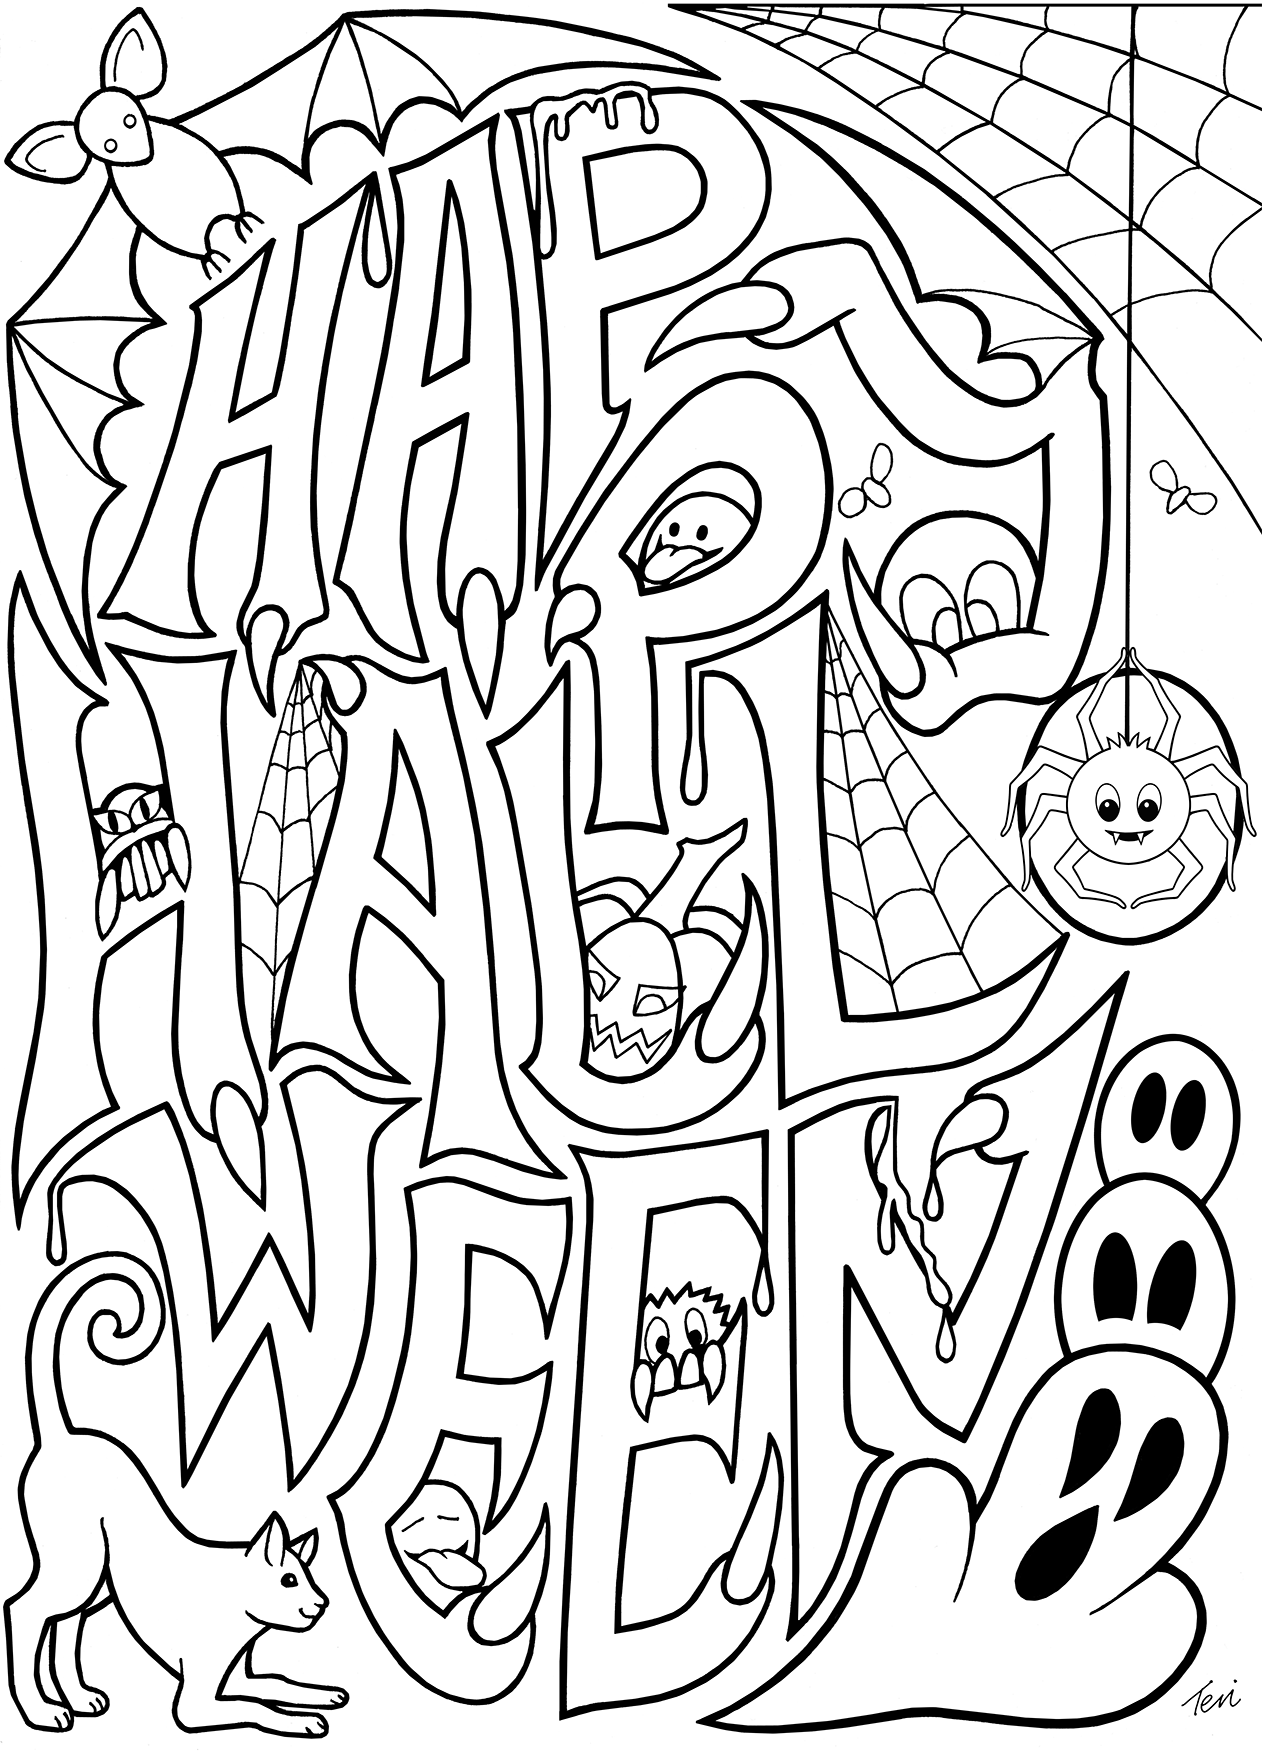 free coloring pages halloween - photo#17